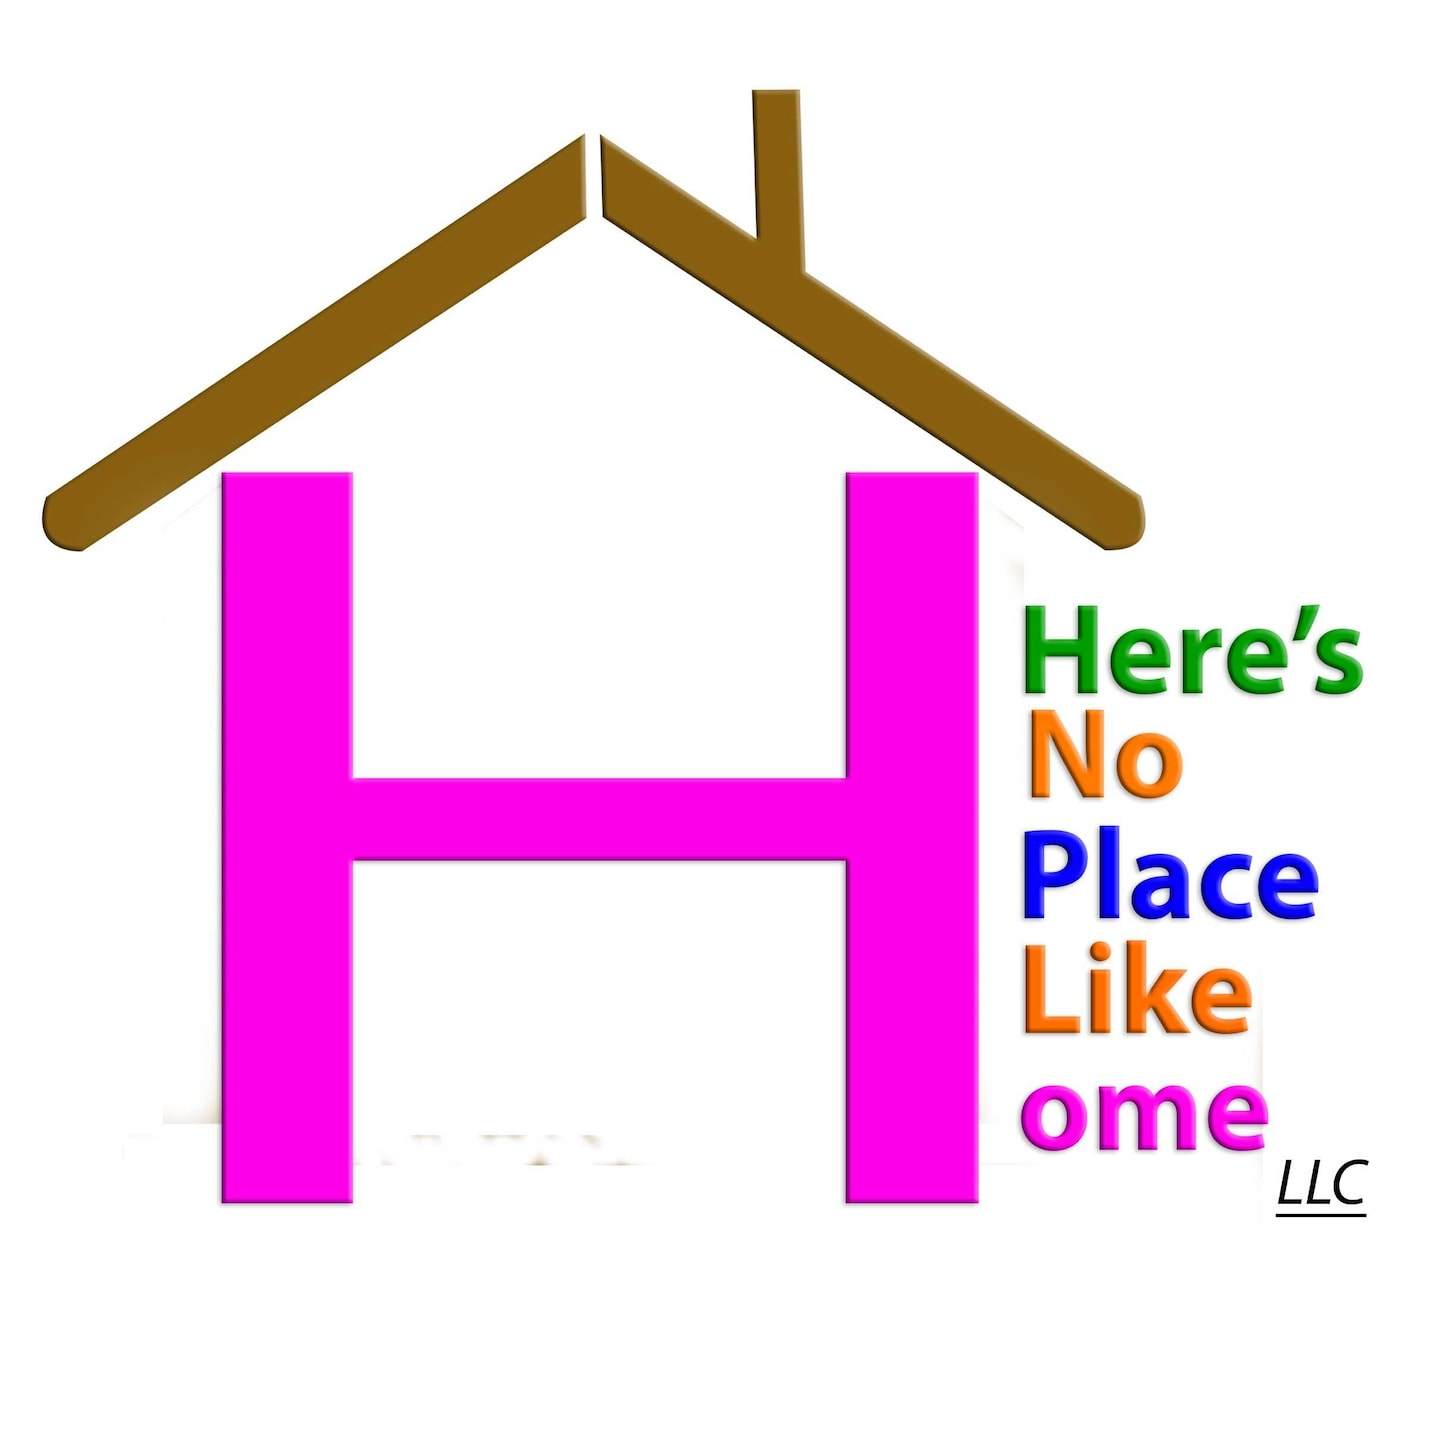 There's No Place Like Home LLC